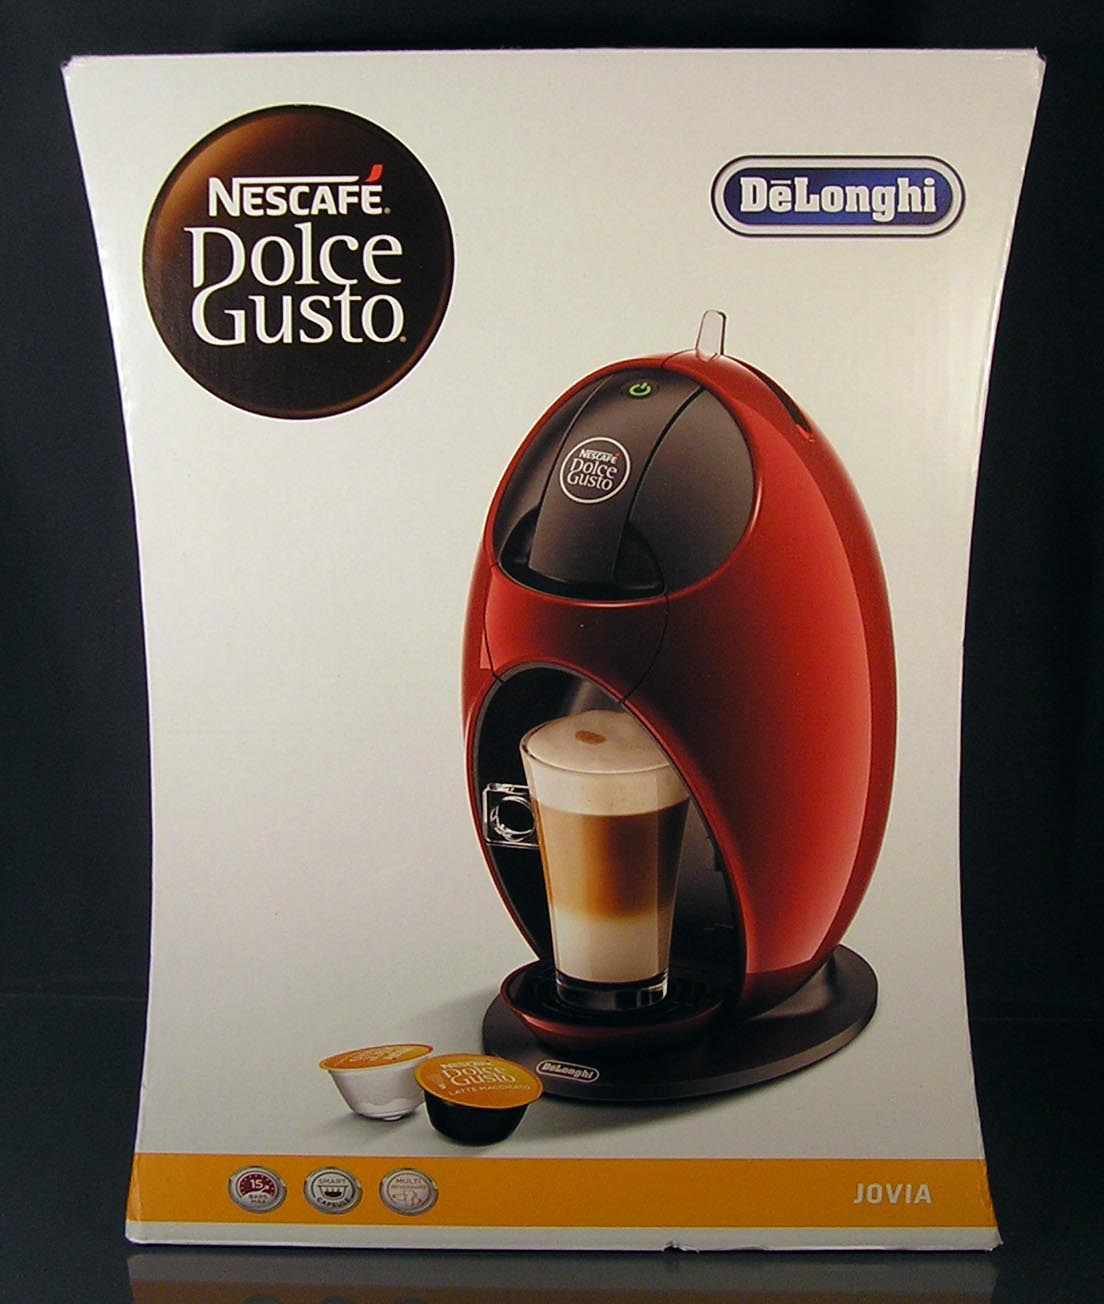 delonghi jovia rot edg 250 r nescaf dolce gusto kaffee. Black Bedroom Furniture Sets. Home Design Ideas